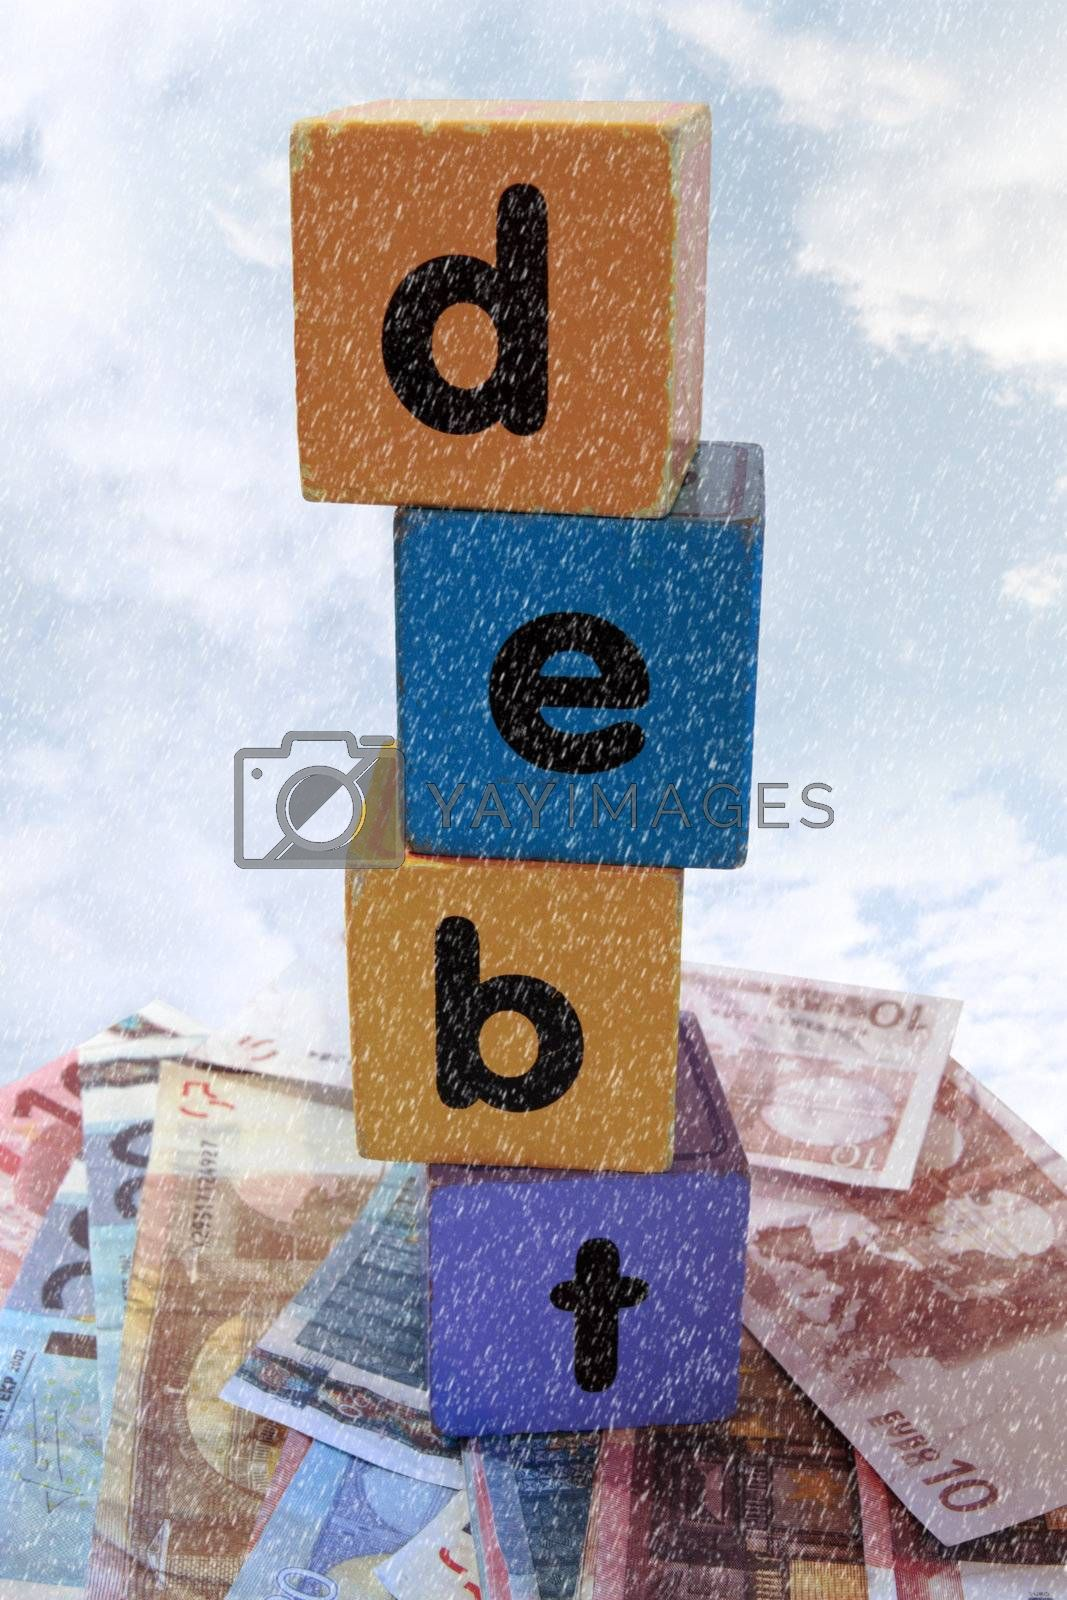 Royalty free image of stormy debt in play letters by morrbyte